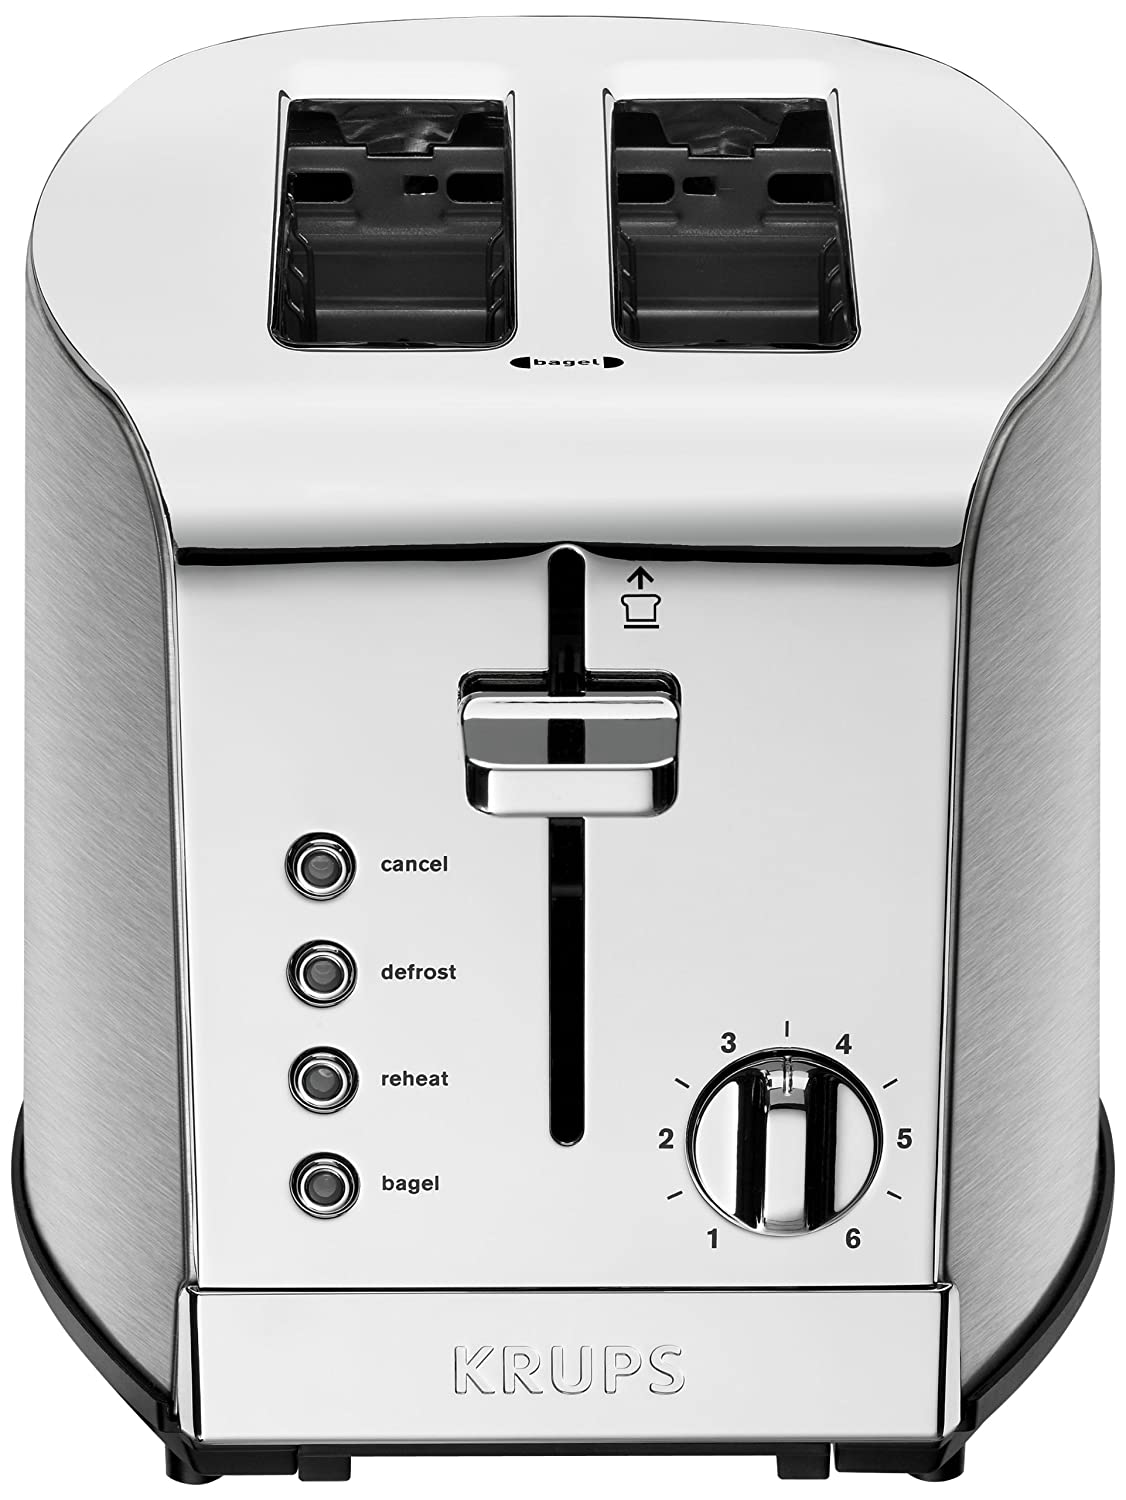 KRUPS KH732D Breakfast Set 2-Slot Toaster with Brushed and Chrome Stainless Steel Housing, 2-Slice, Silver Groupe SEB 1500637649